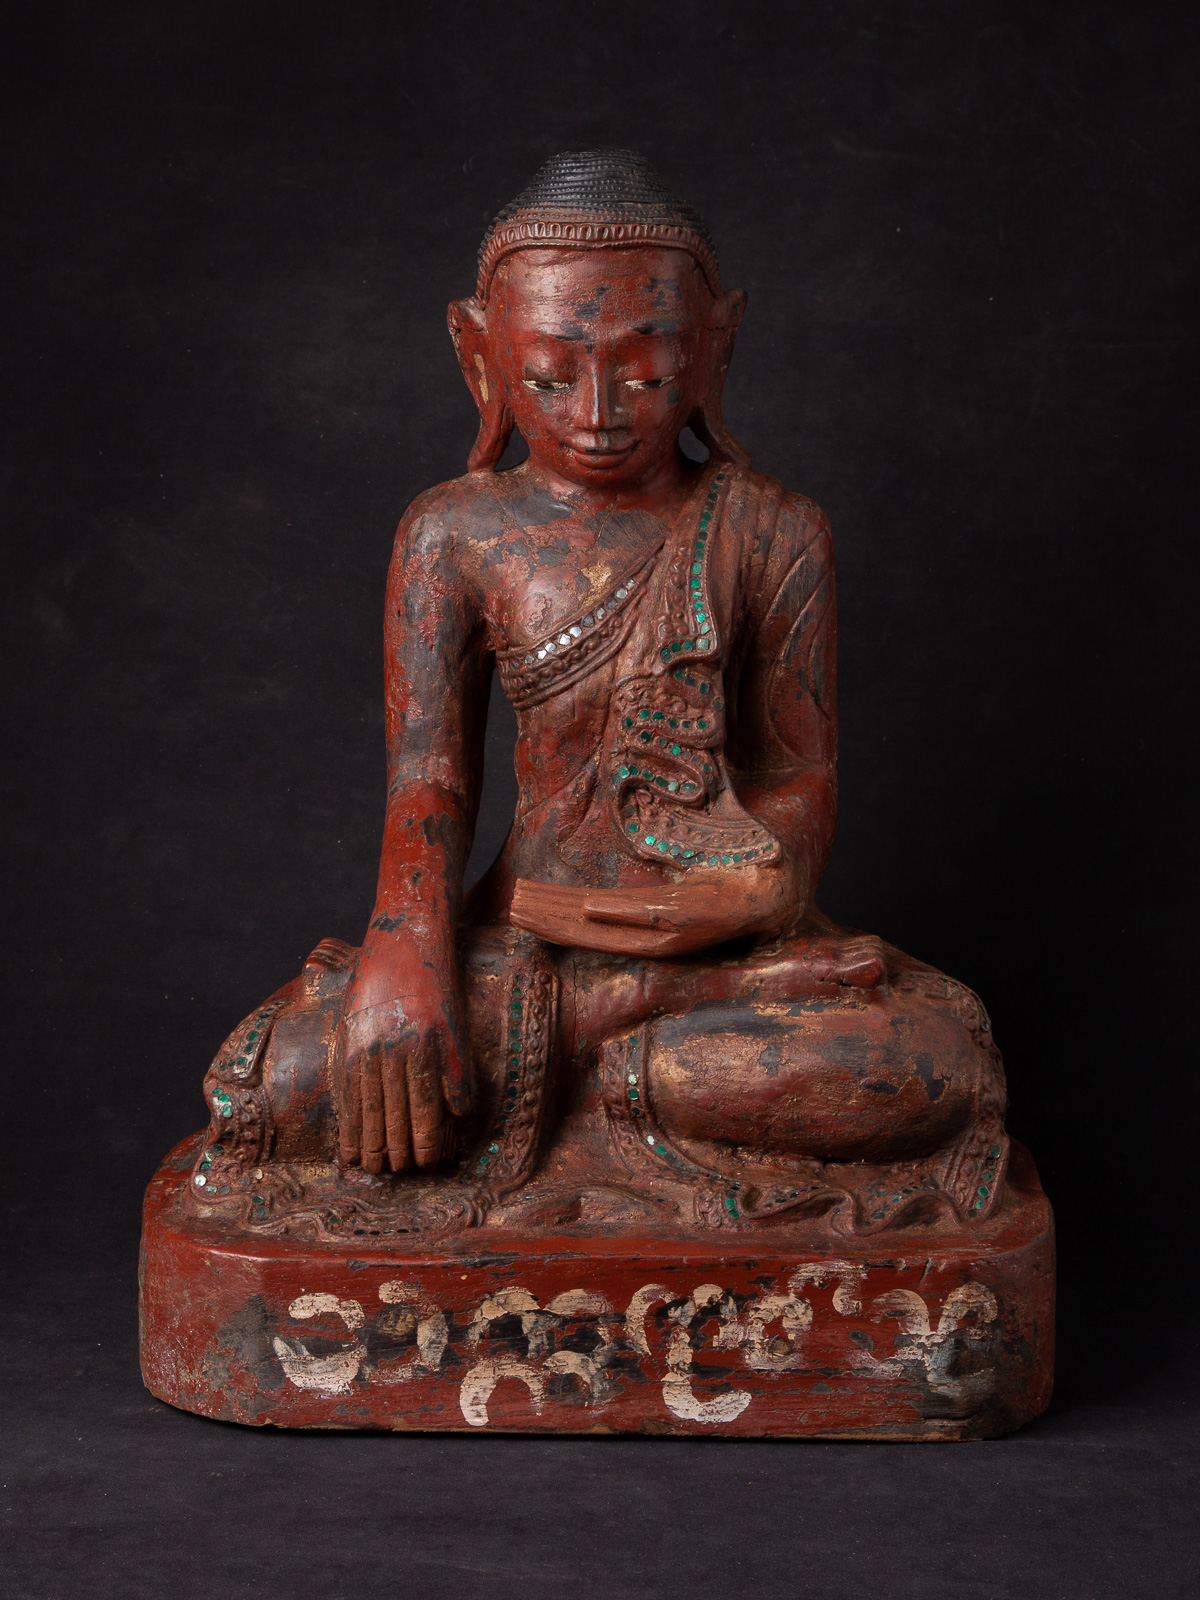 Antique Burmese Mandalay Buddha statue from Burma made from Wood